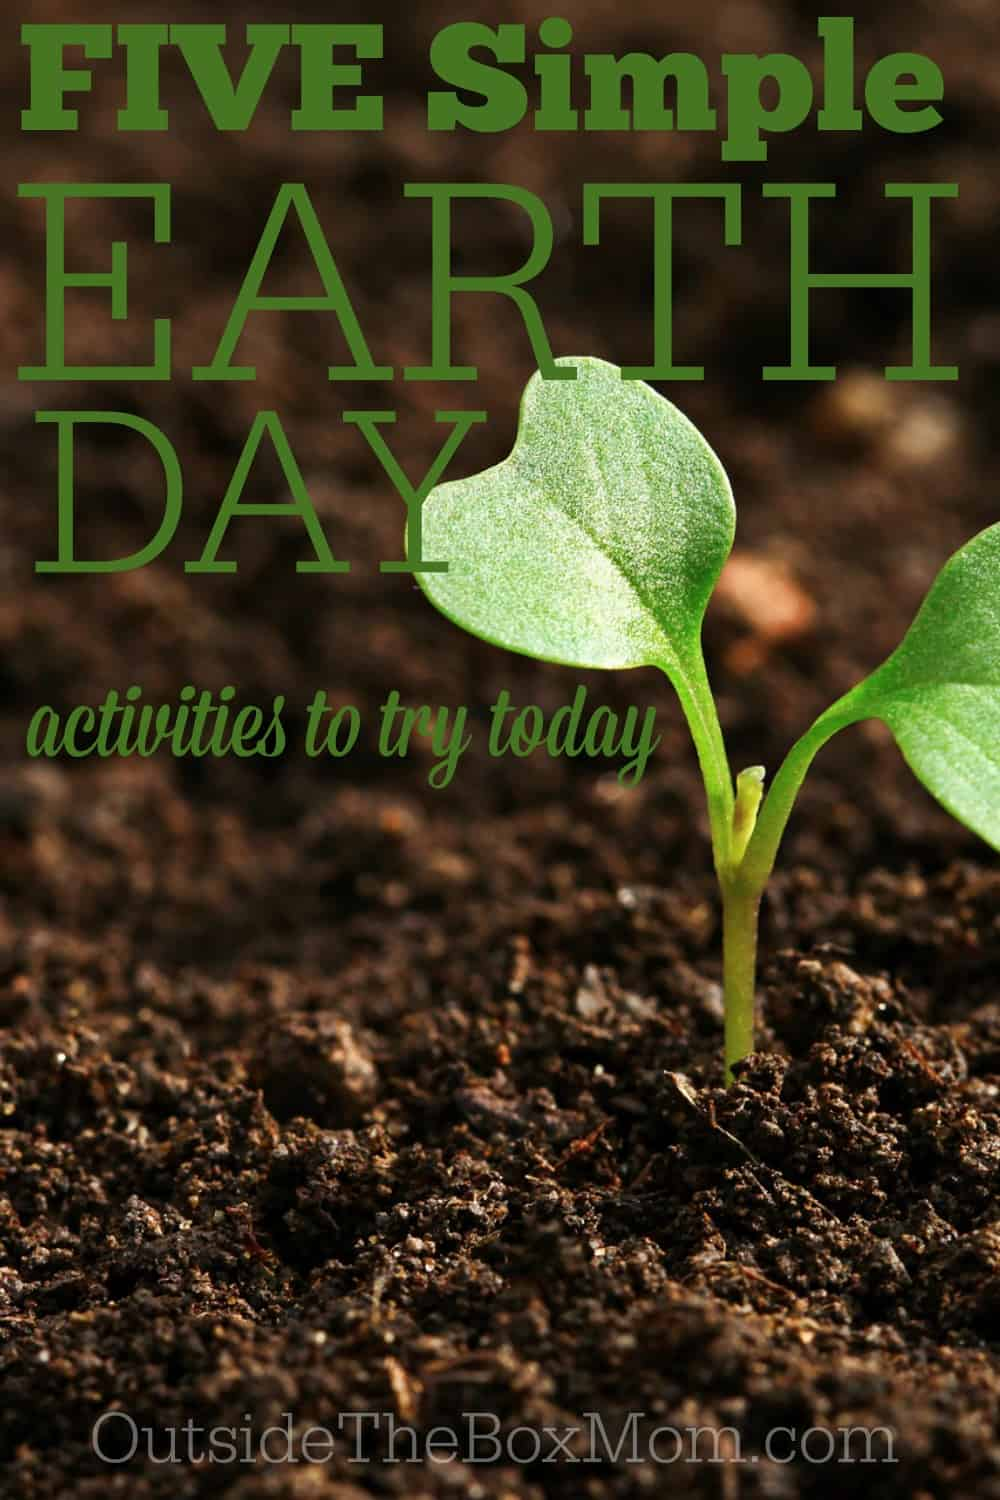 Earth Day may only come around once a year, but these practical (and simple) Earth Day activities are sure to help your family make a difference.